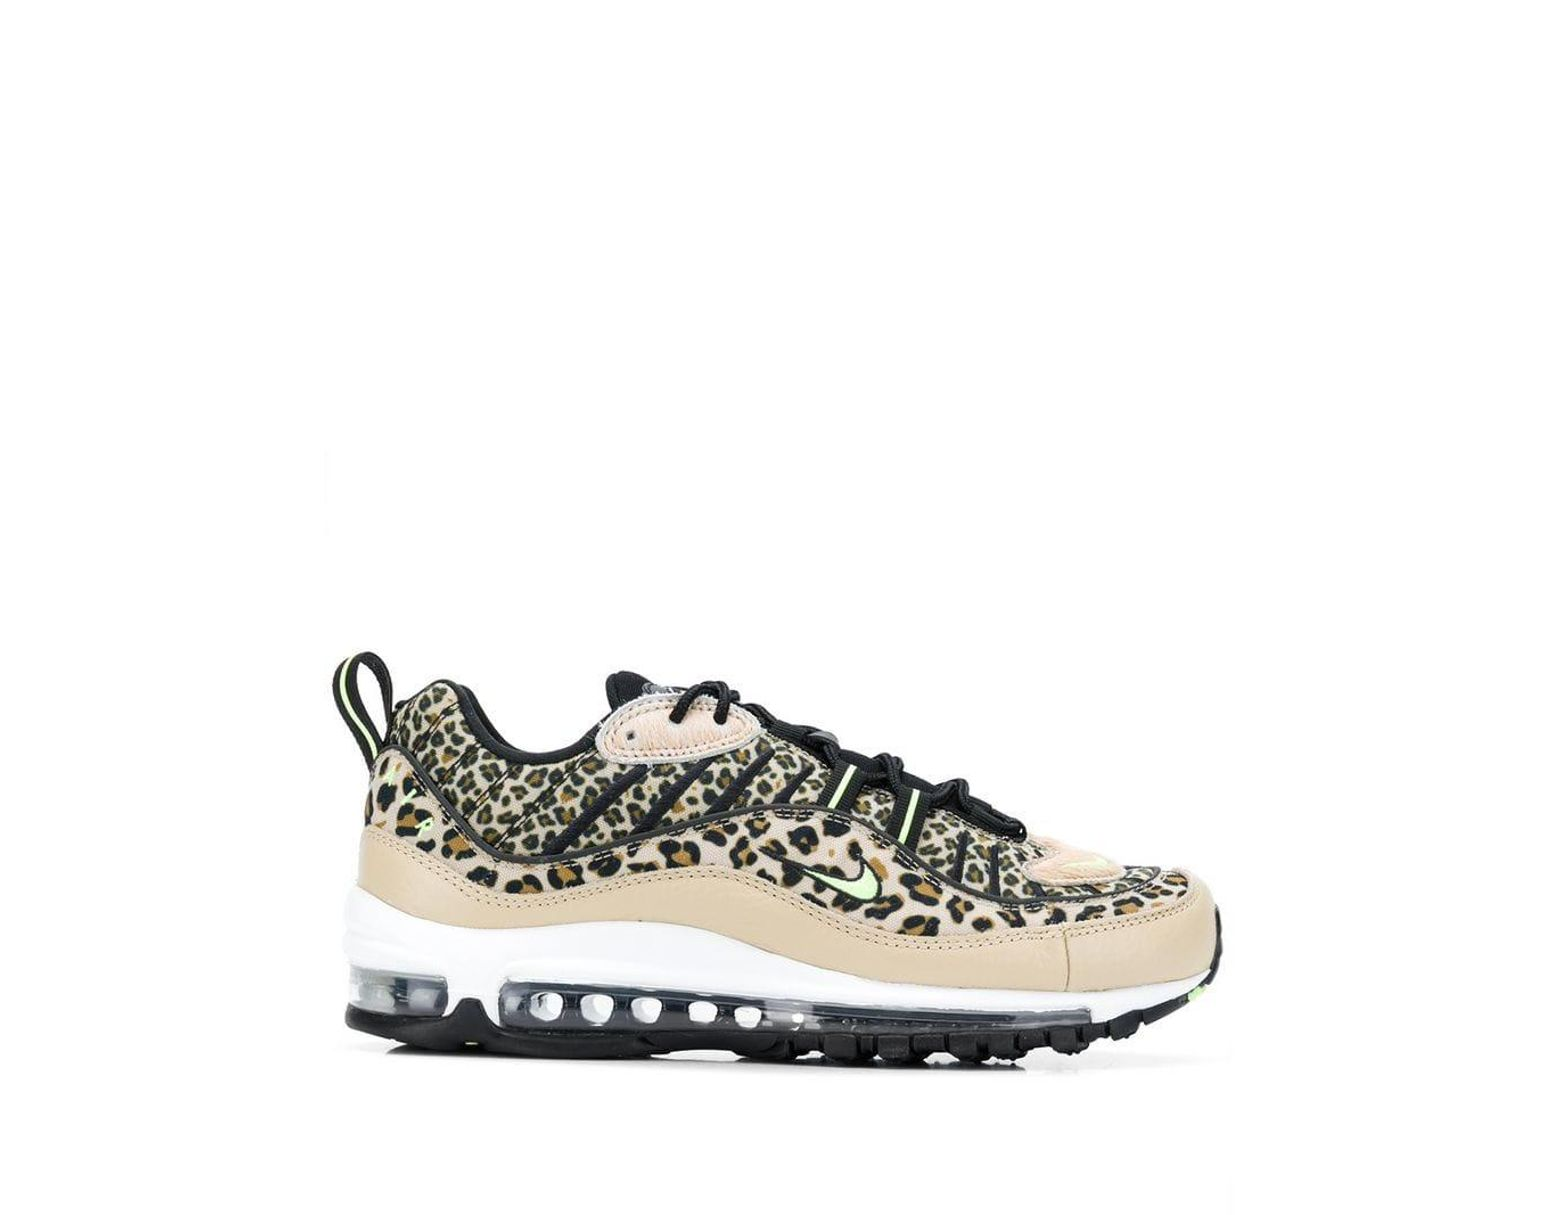 new arrival b60a1 38d2d Nike Air Max 98 Leopard Print Sneakers in Brown - Save 44% - Lyst